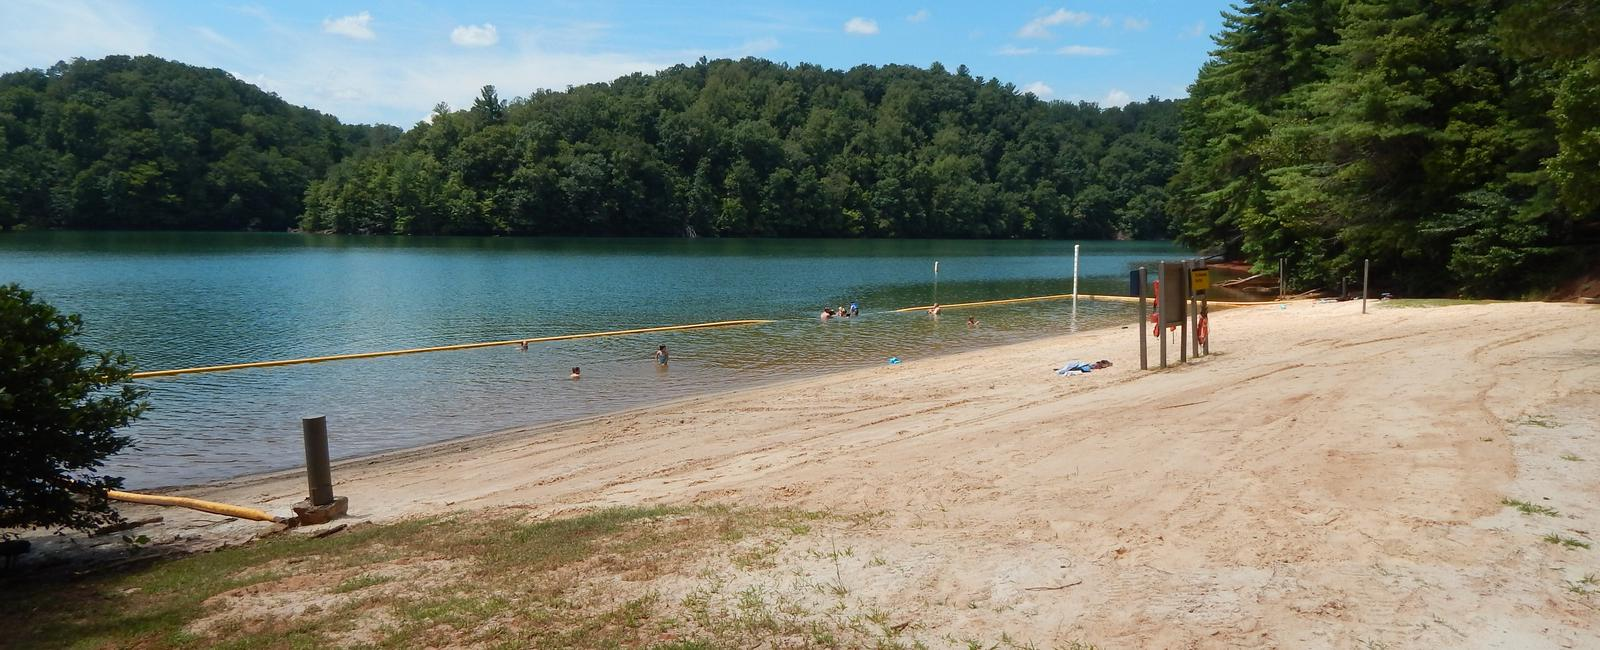 Large sandy beach and roped-off swim area at Horseshoe Point. Horseshoe Point beach and swim area.